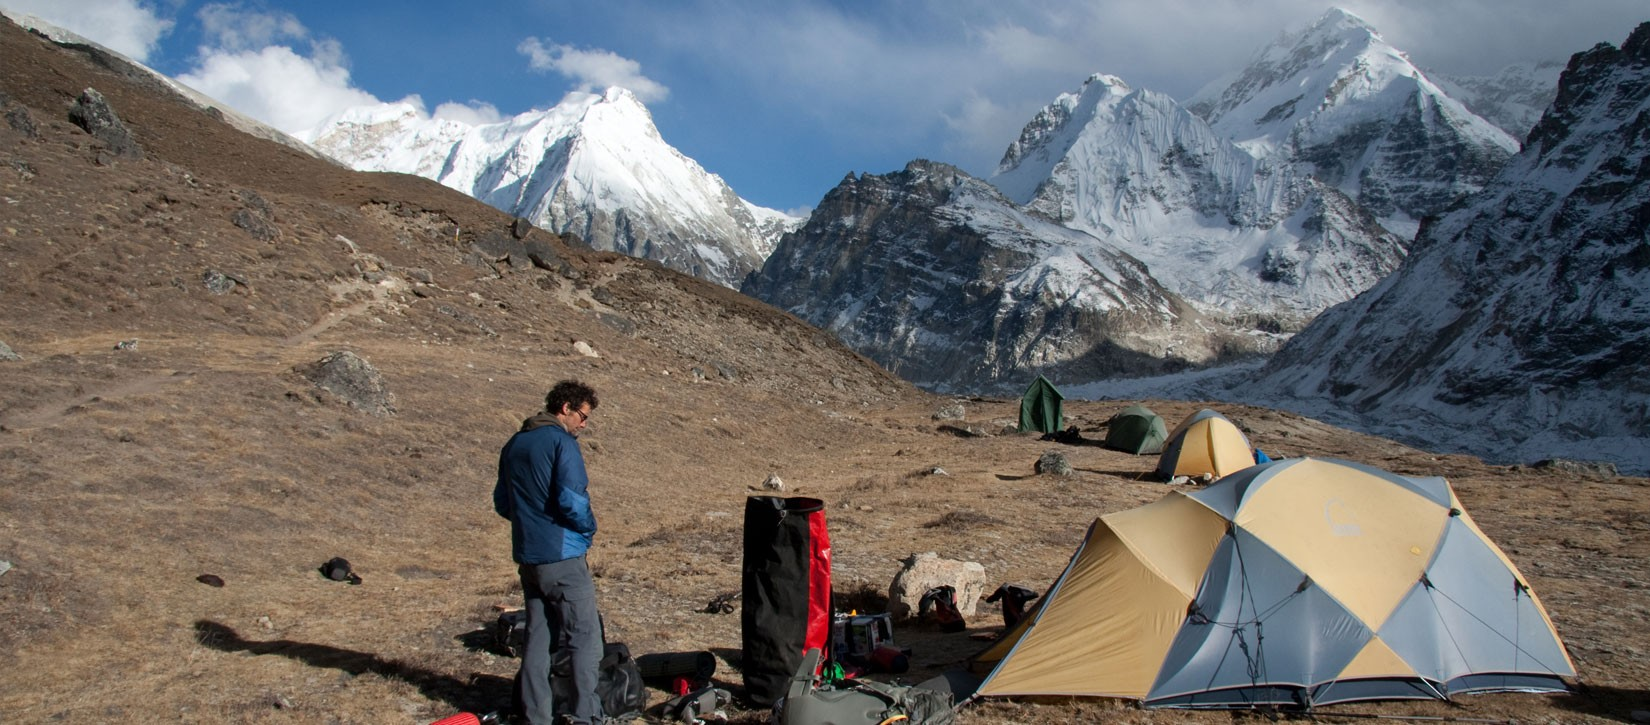 Chang Himal Expedition